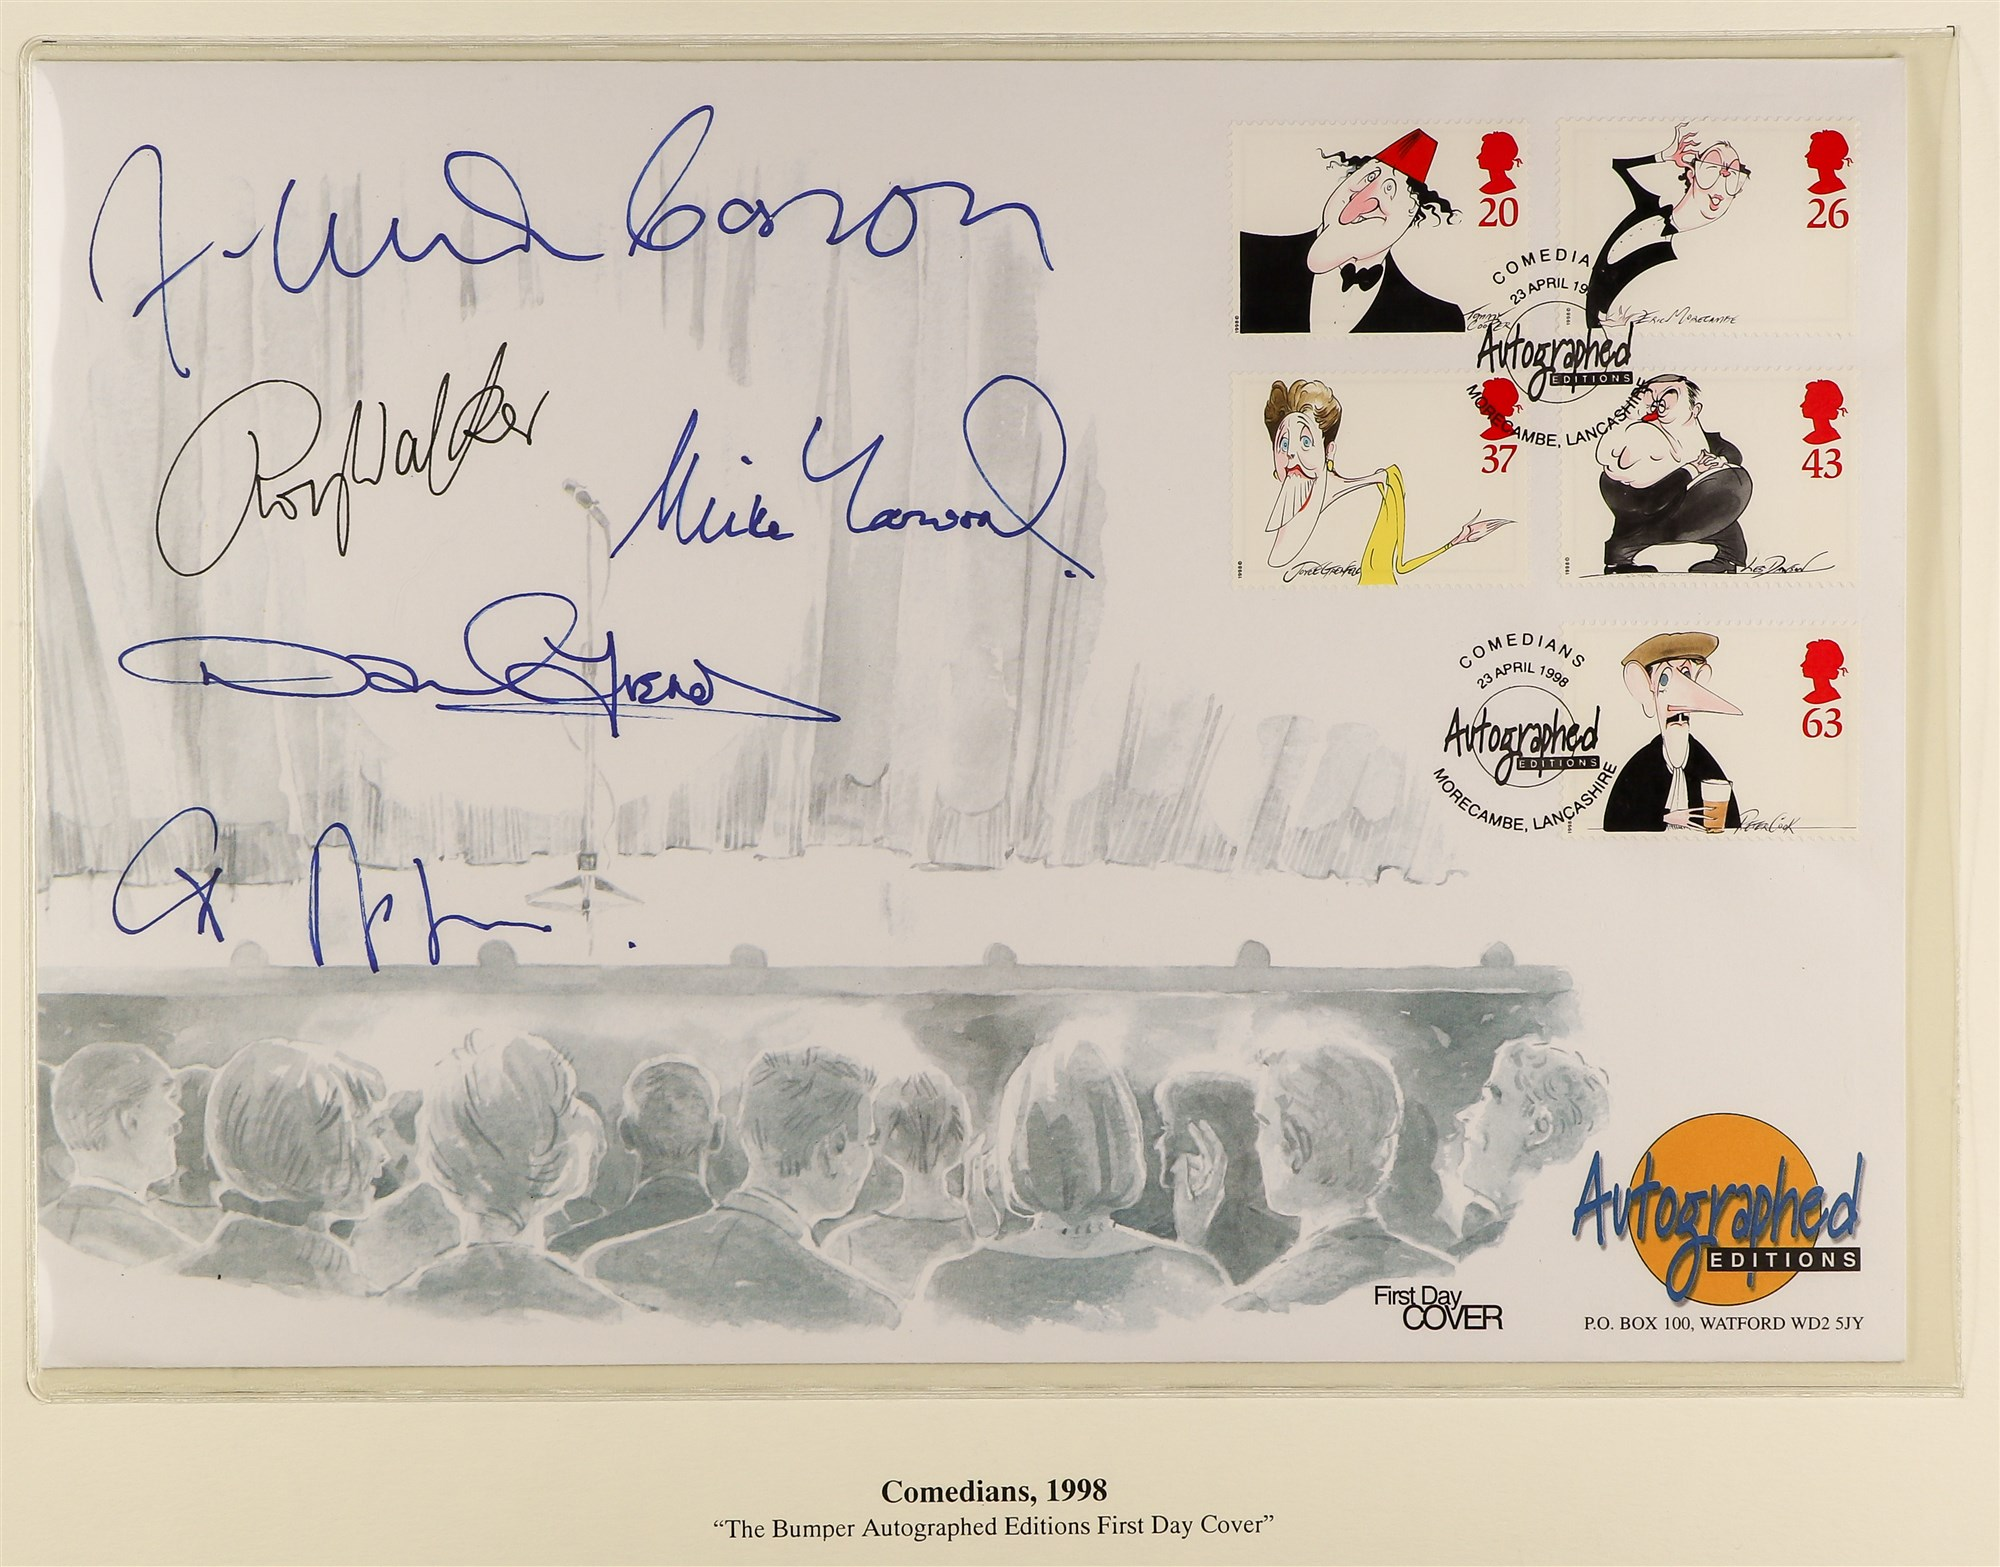 GREAT BRITAIN 1997-98 AUTOGRAPHED COVERS - COMEDIANS 1997 Enid Blyton FDC with illustration of and - Image 3 of 3